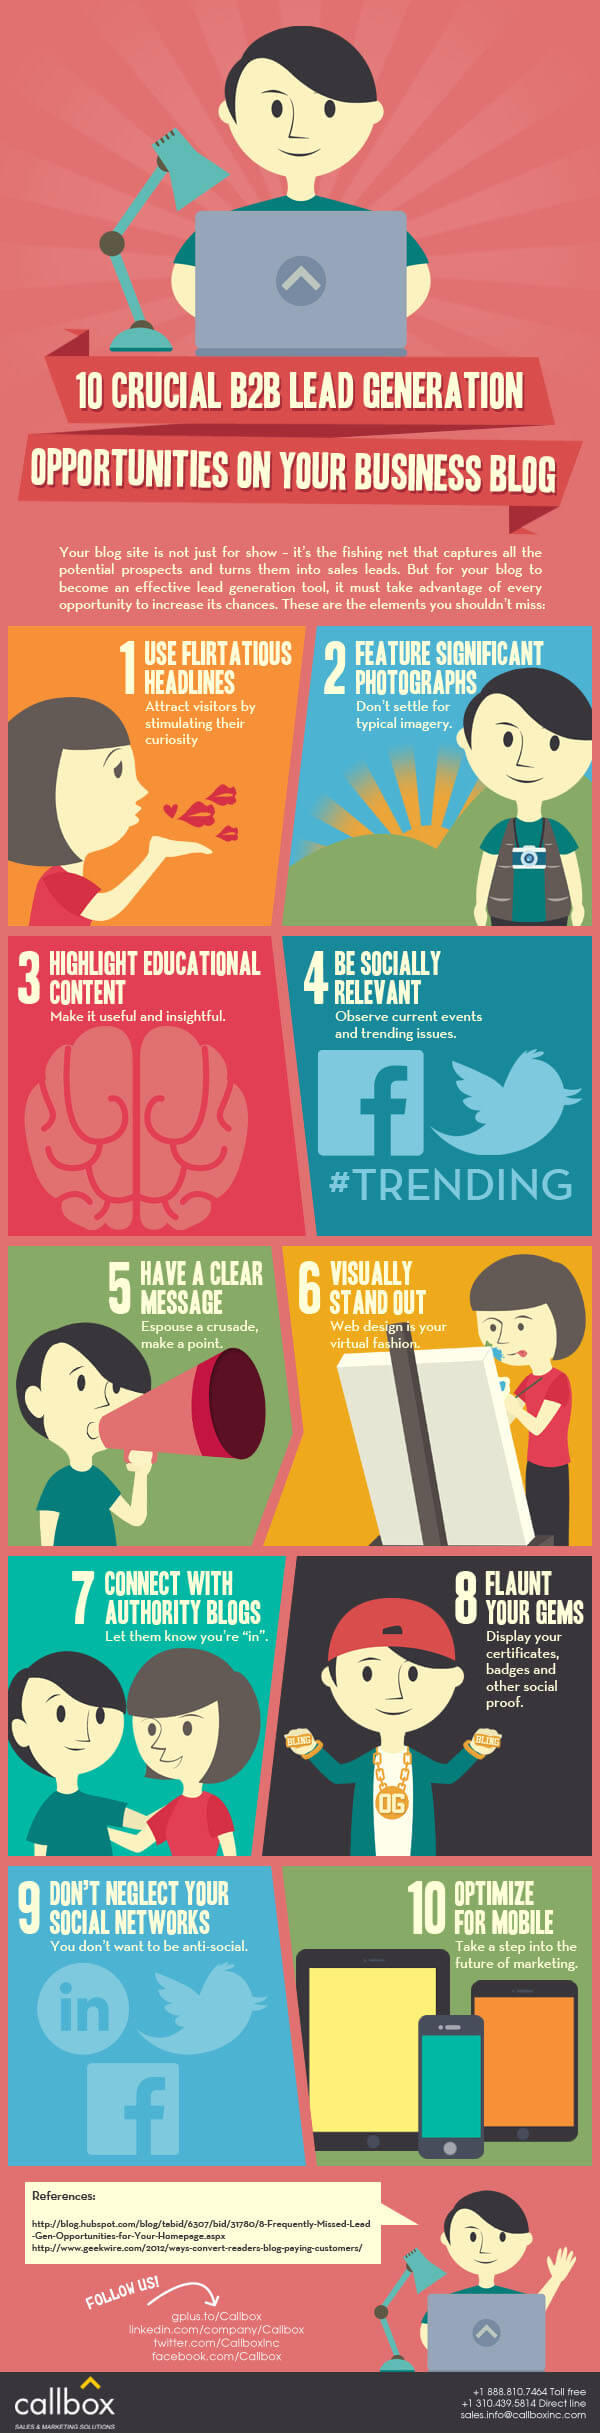 10-Crucial-B2B-Lead-Generation-Opportunities-you-should-not-miss-on-your-Business-Blog-infographic